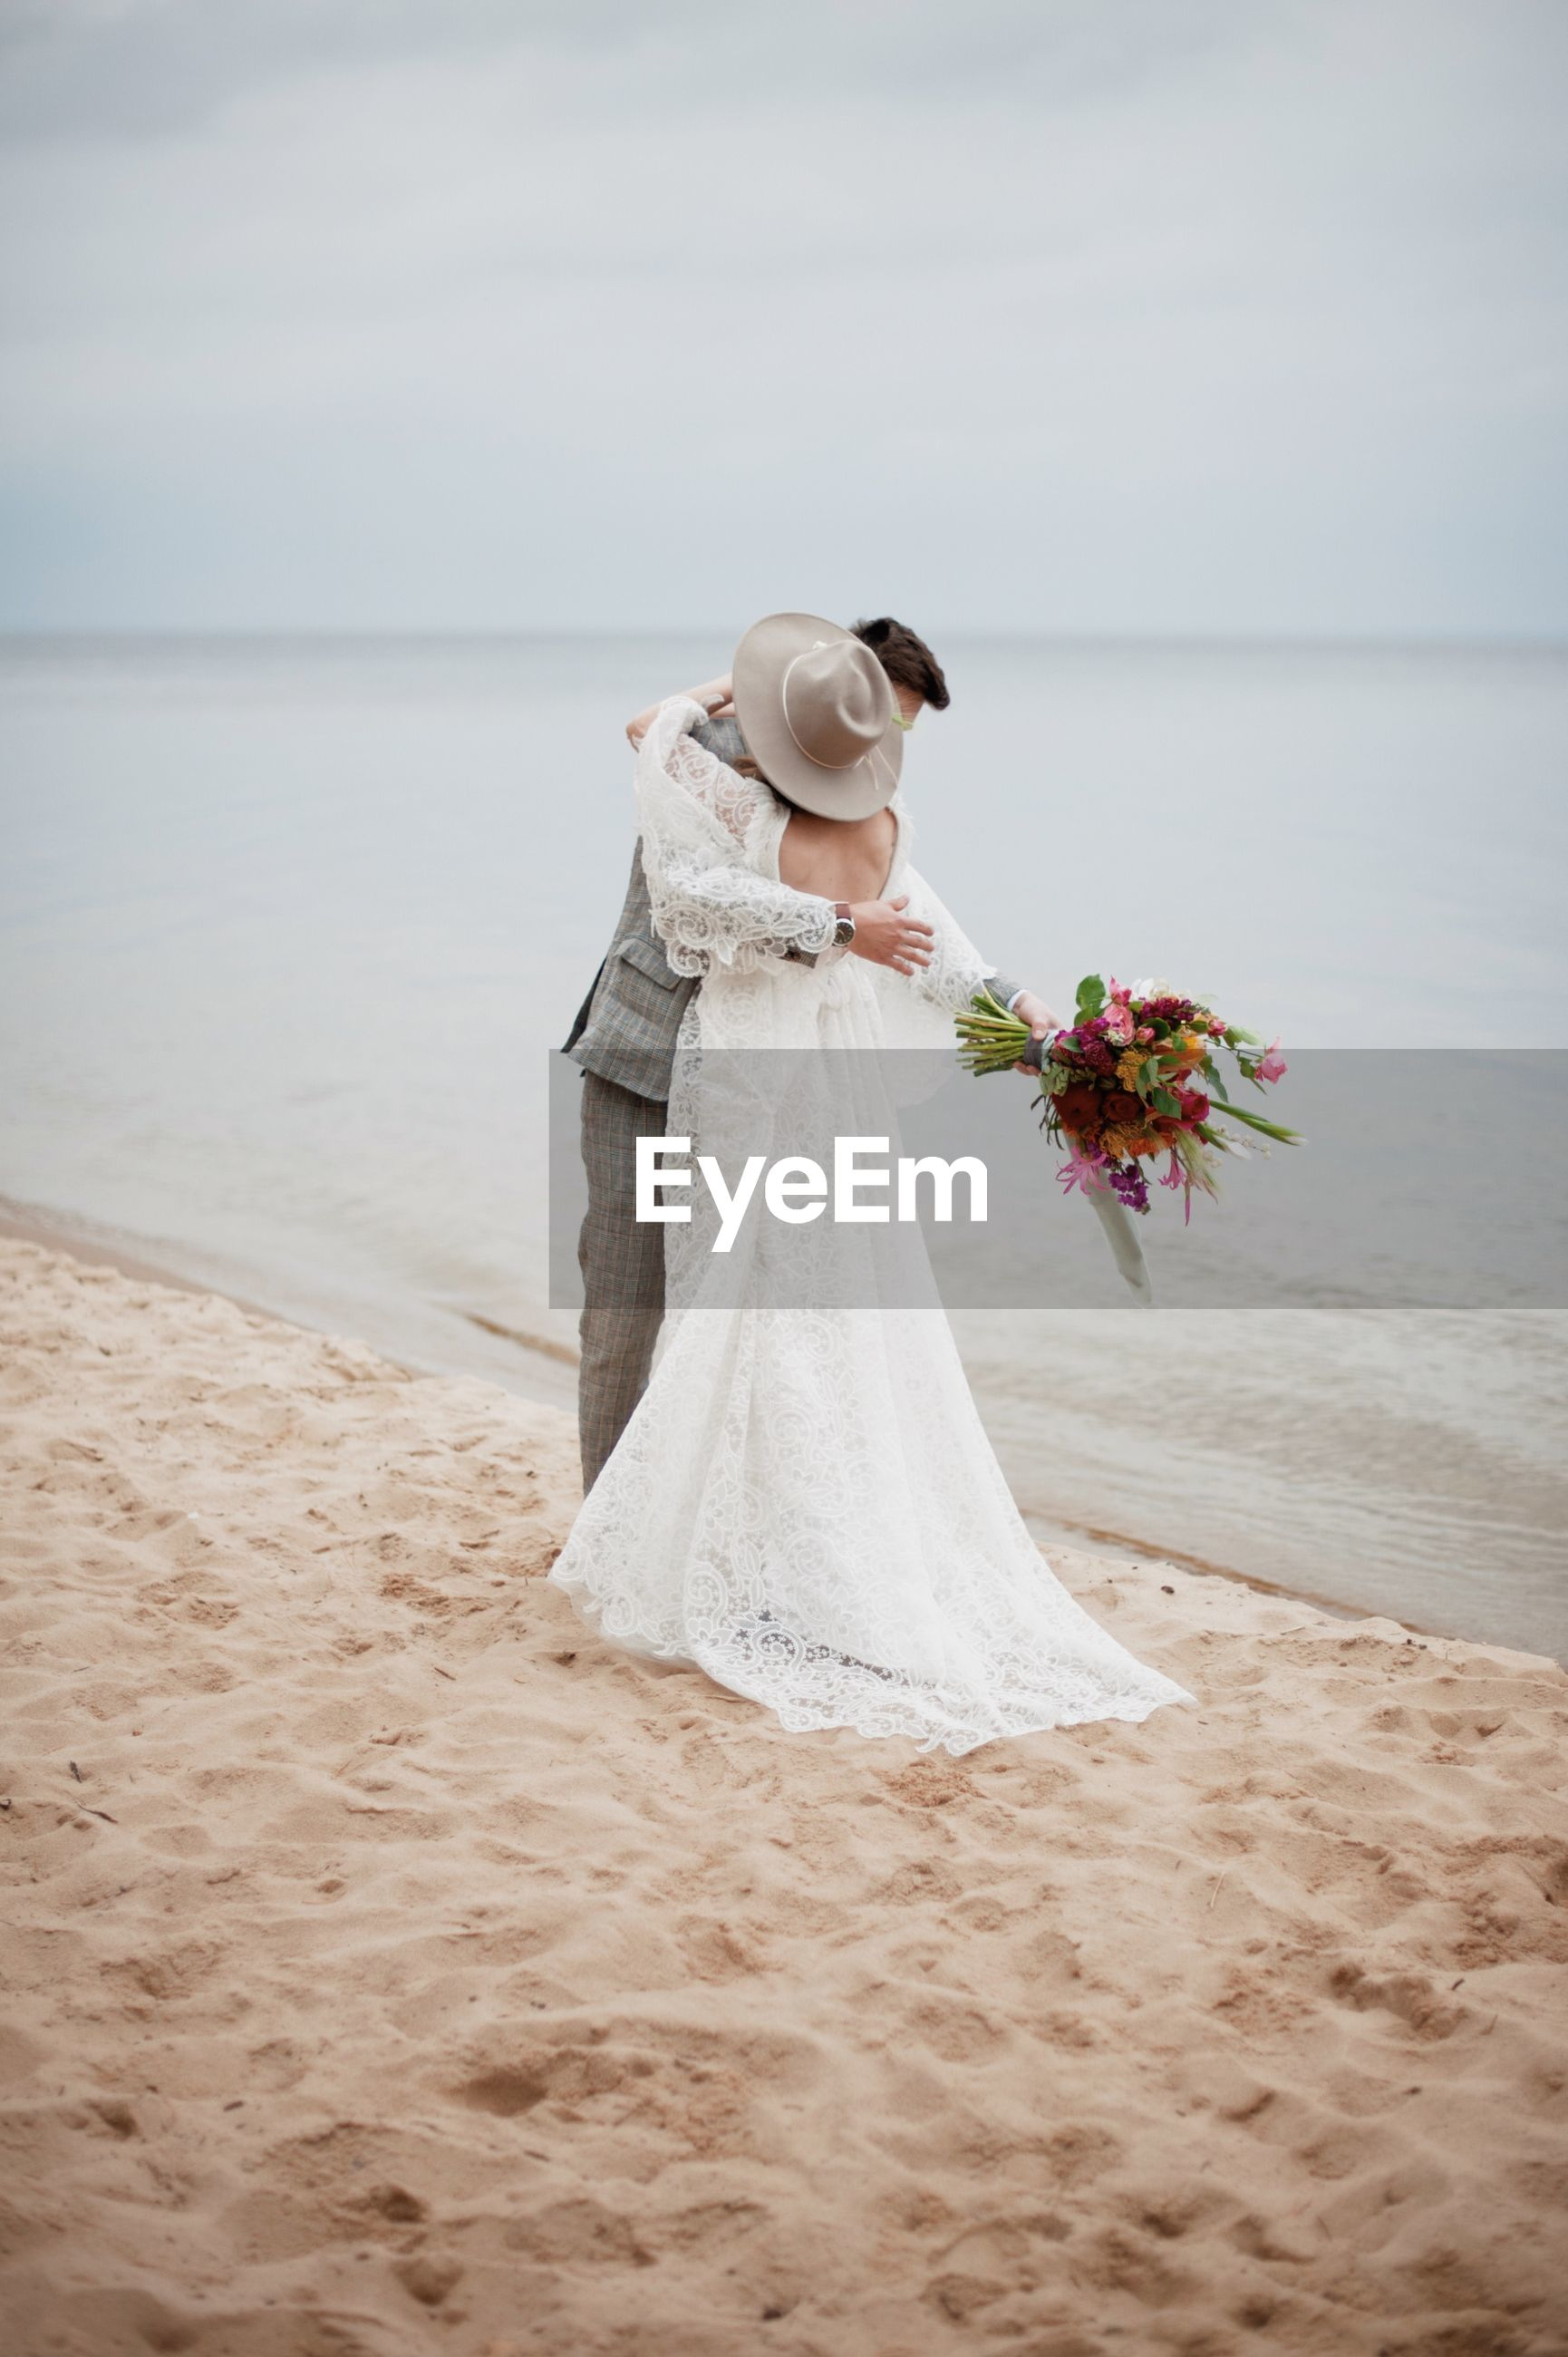 Bride and bridegroom embracing at beach during wedding ceremony